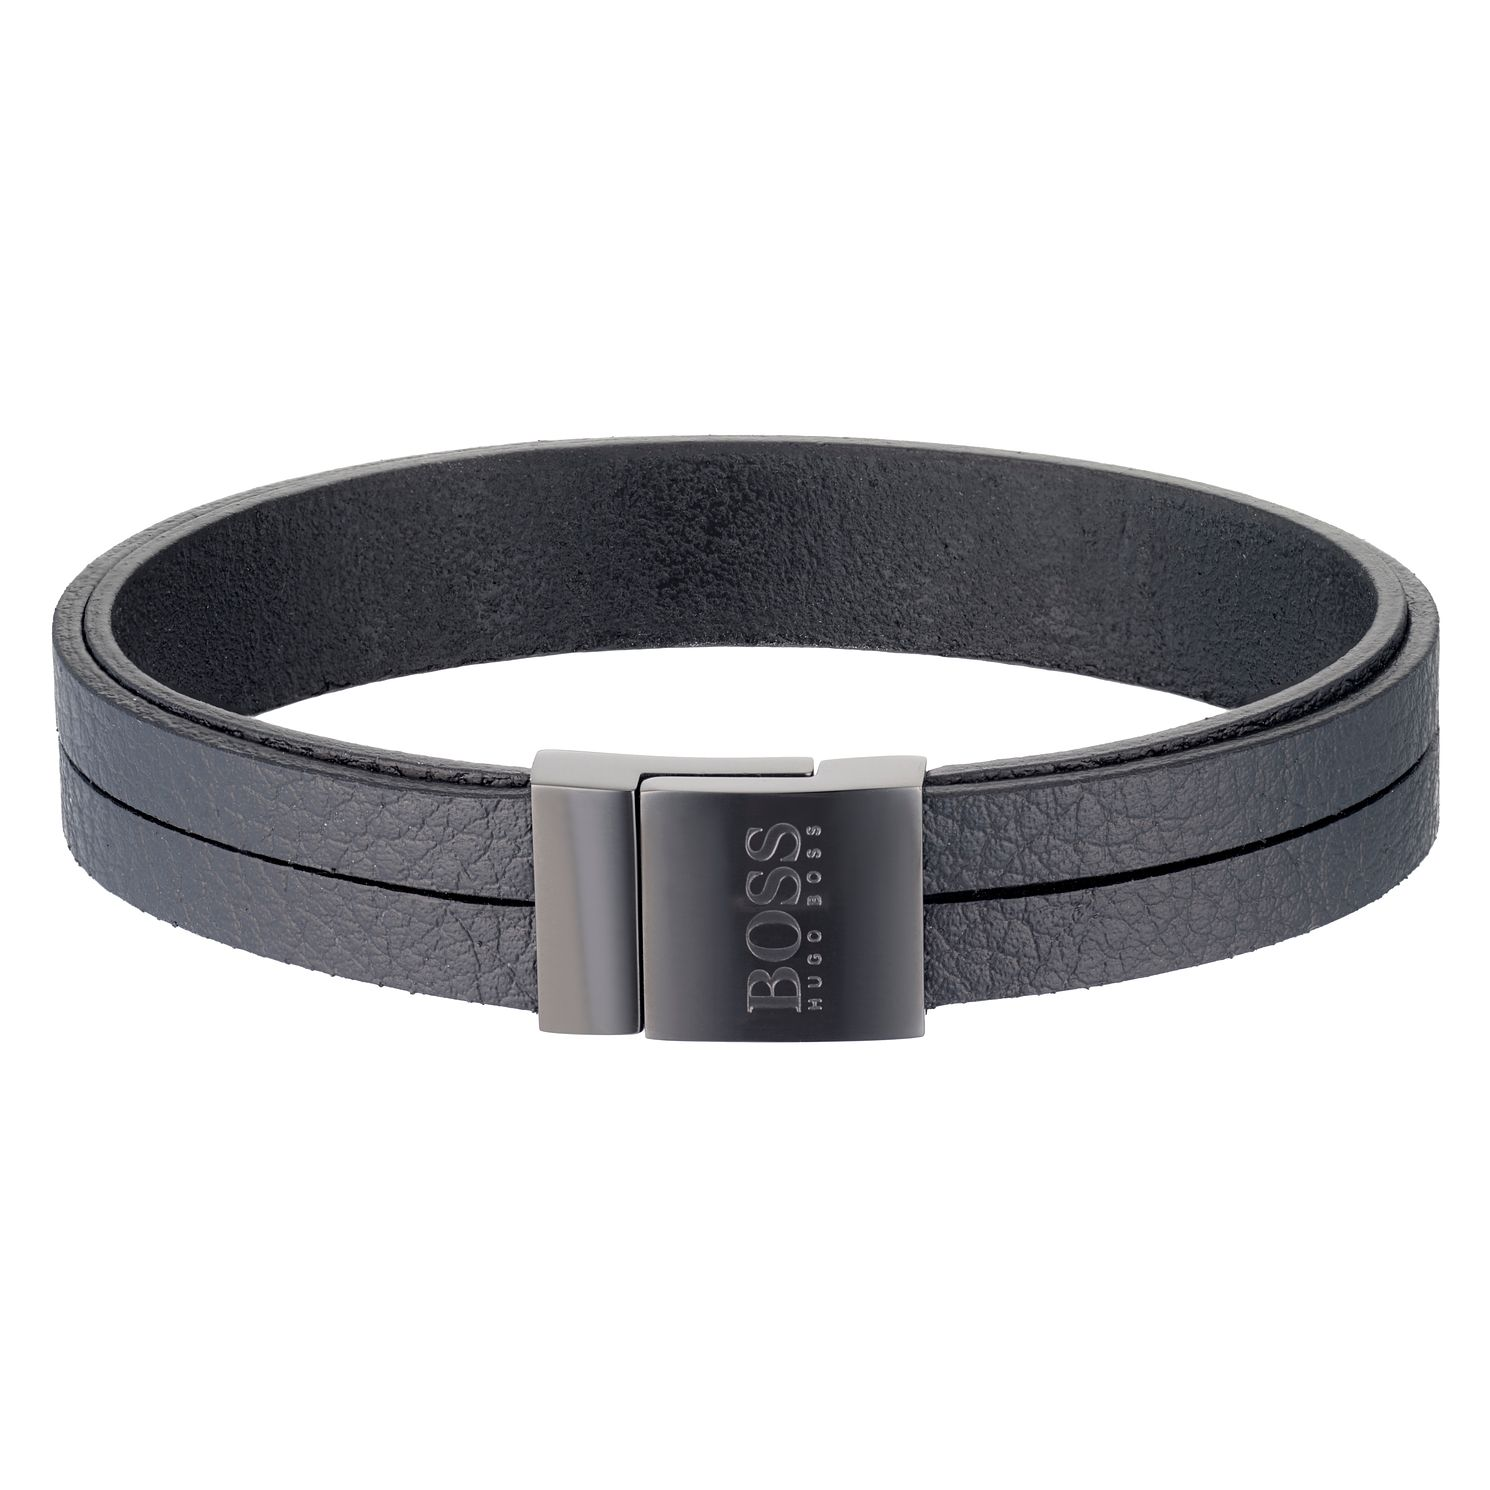 BOSS Men's Black Leather Bracelet - Product number 6344879